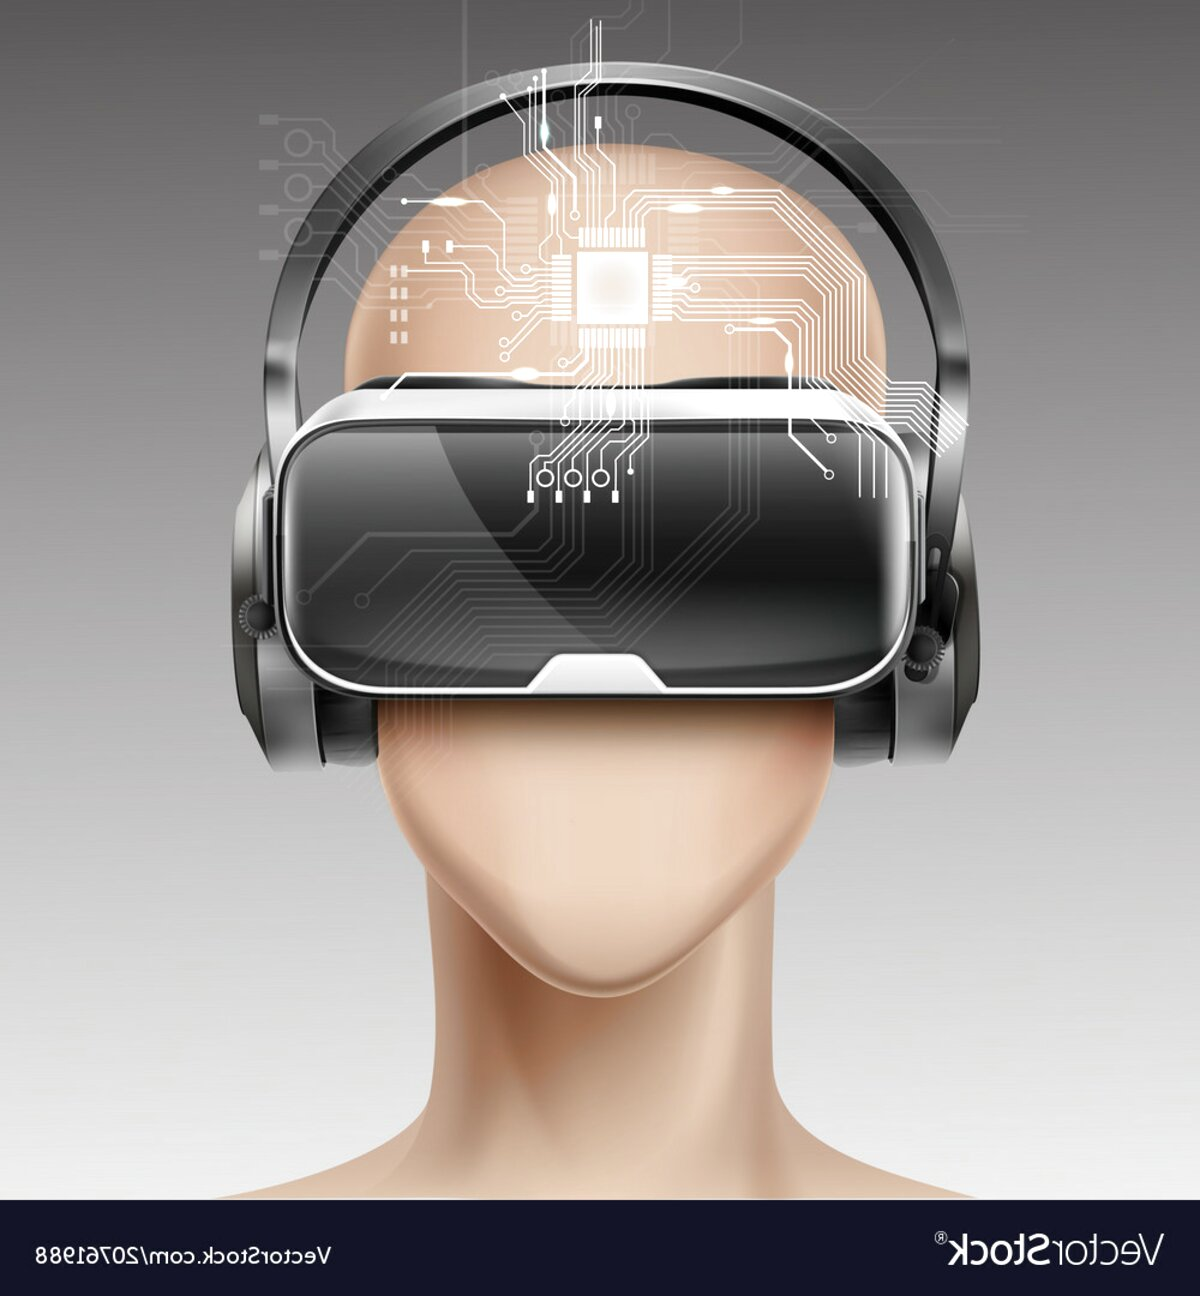 head mounted display for sale